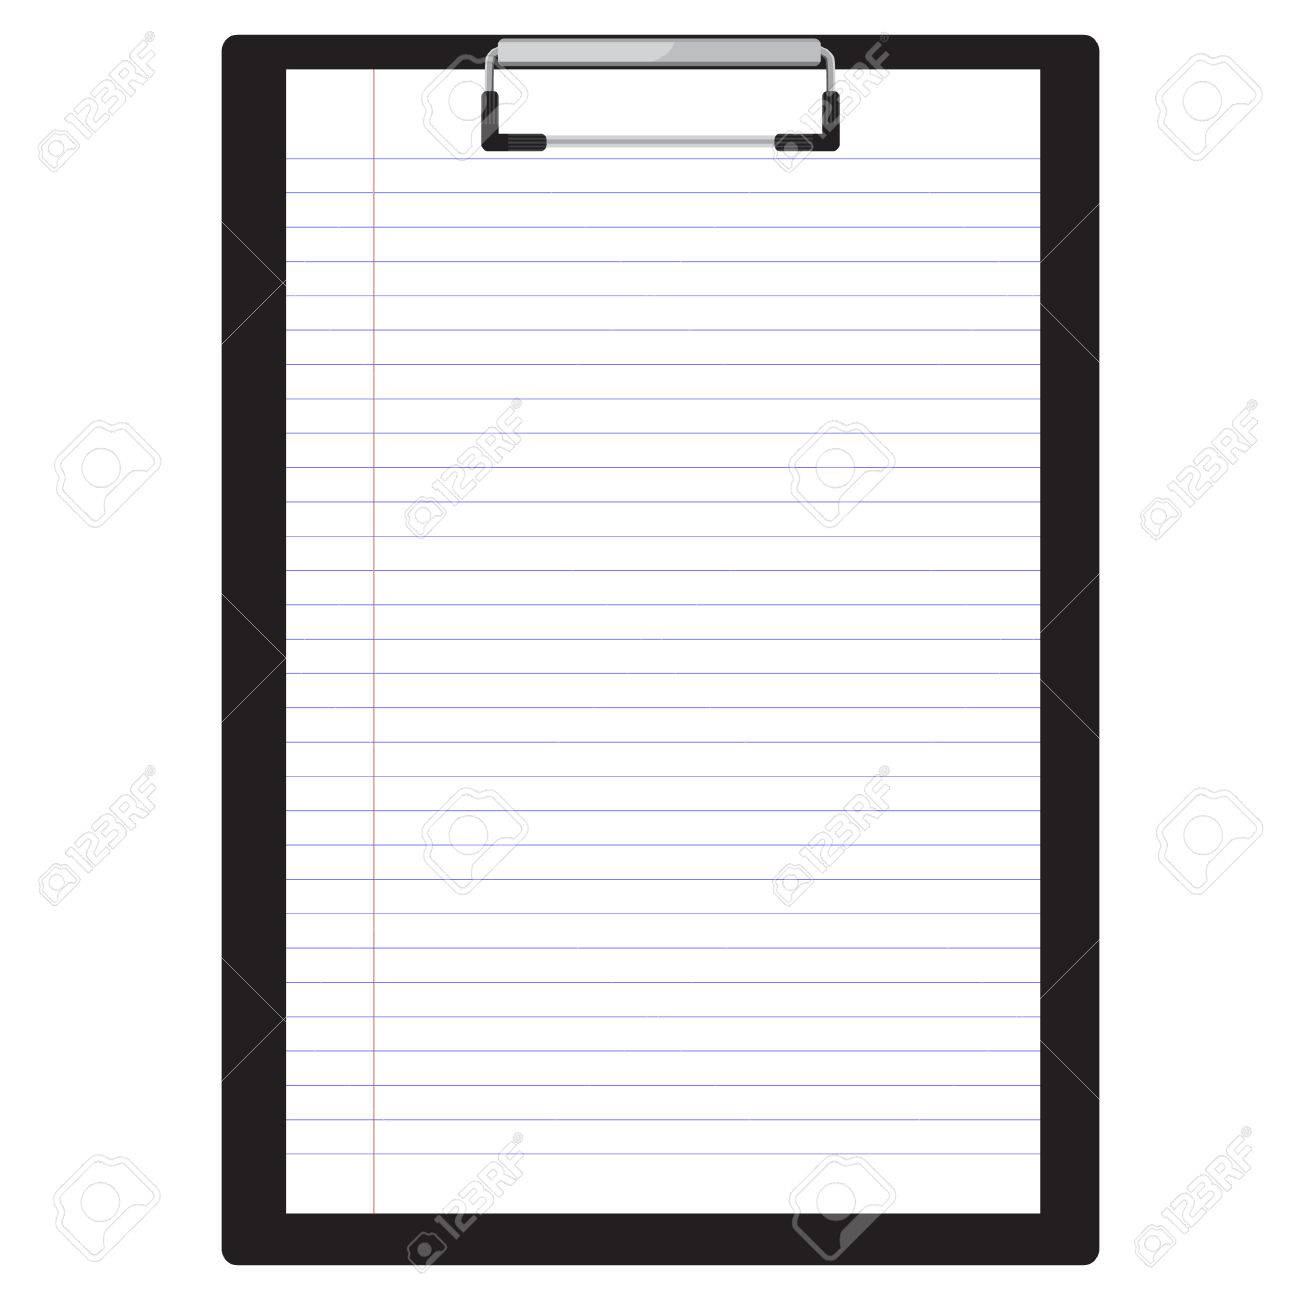 vector illustration of black clipboard with white blank paper